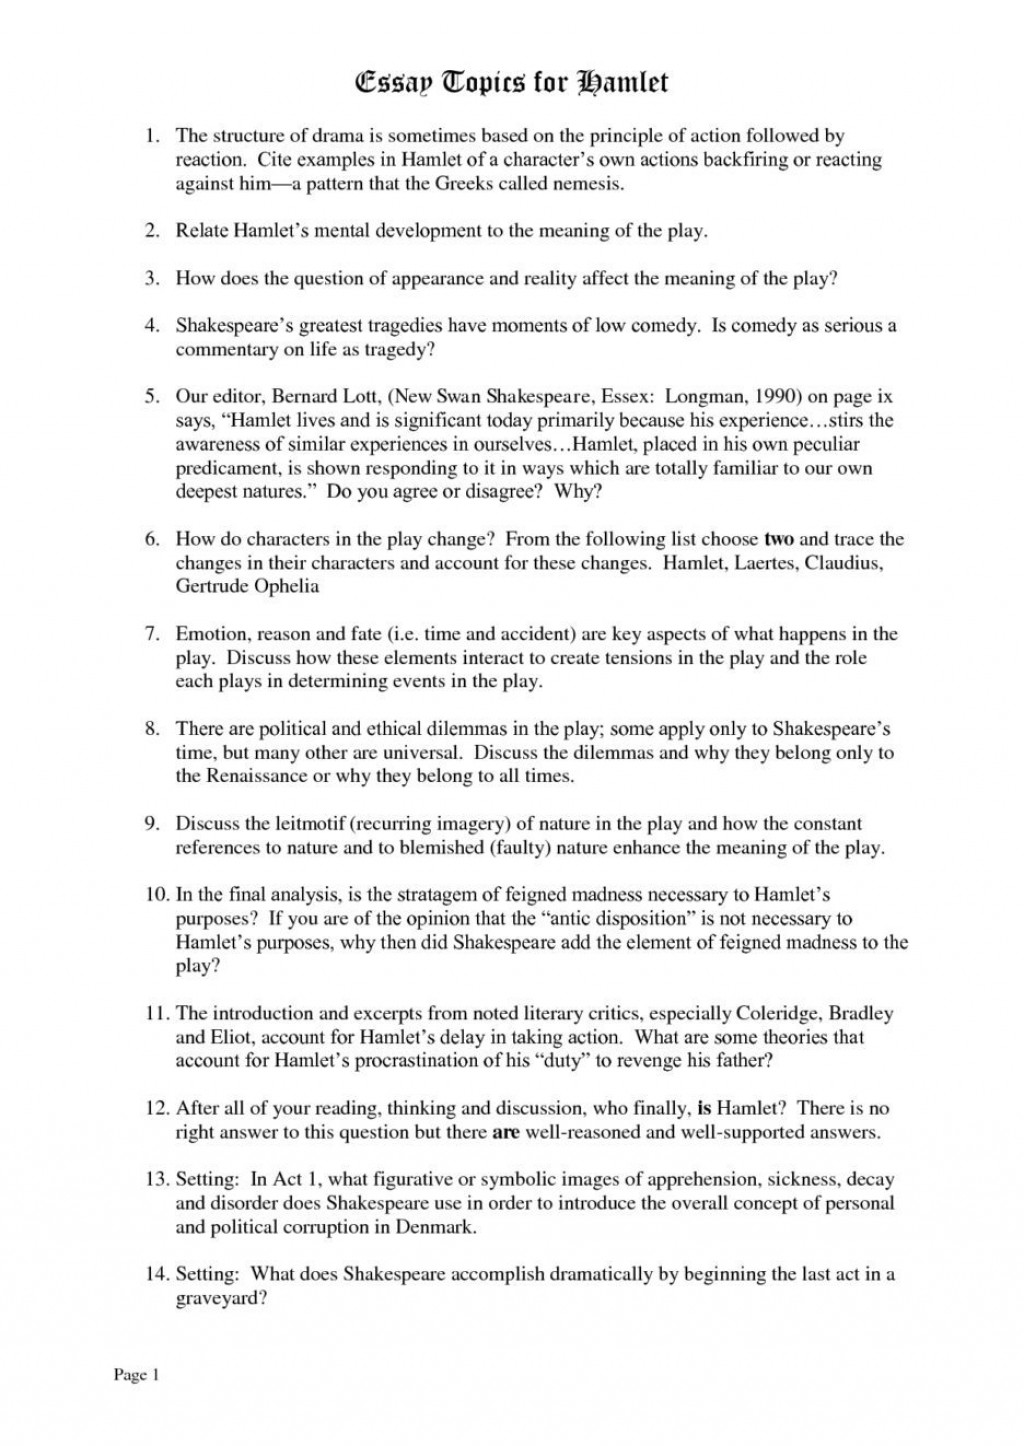 015 Uw Essay Prompt Prompts Questions For Macbeth College Structure Usc Honors 936x1322 Fascinating La Crosse University Of Wisconsin 2019 Bothell Large